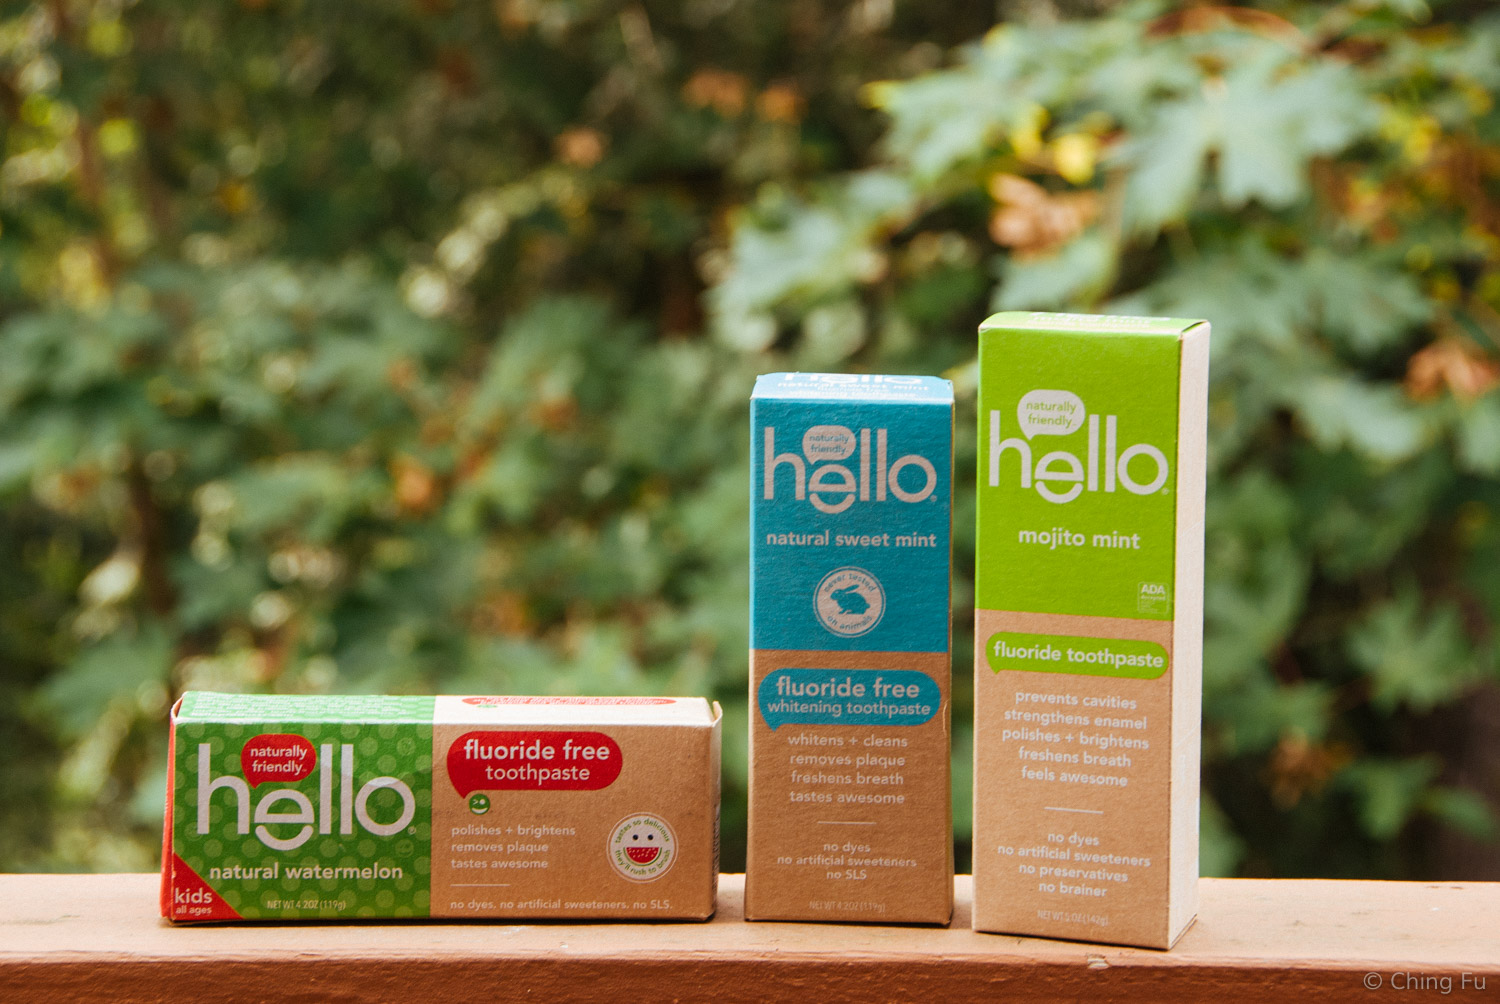 Hello Mojito Mint, Sweet Mint, and Natural Watermelon toothpastes.